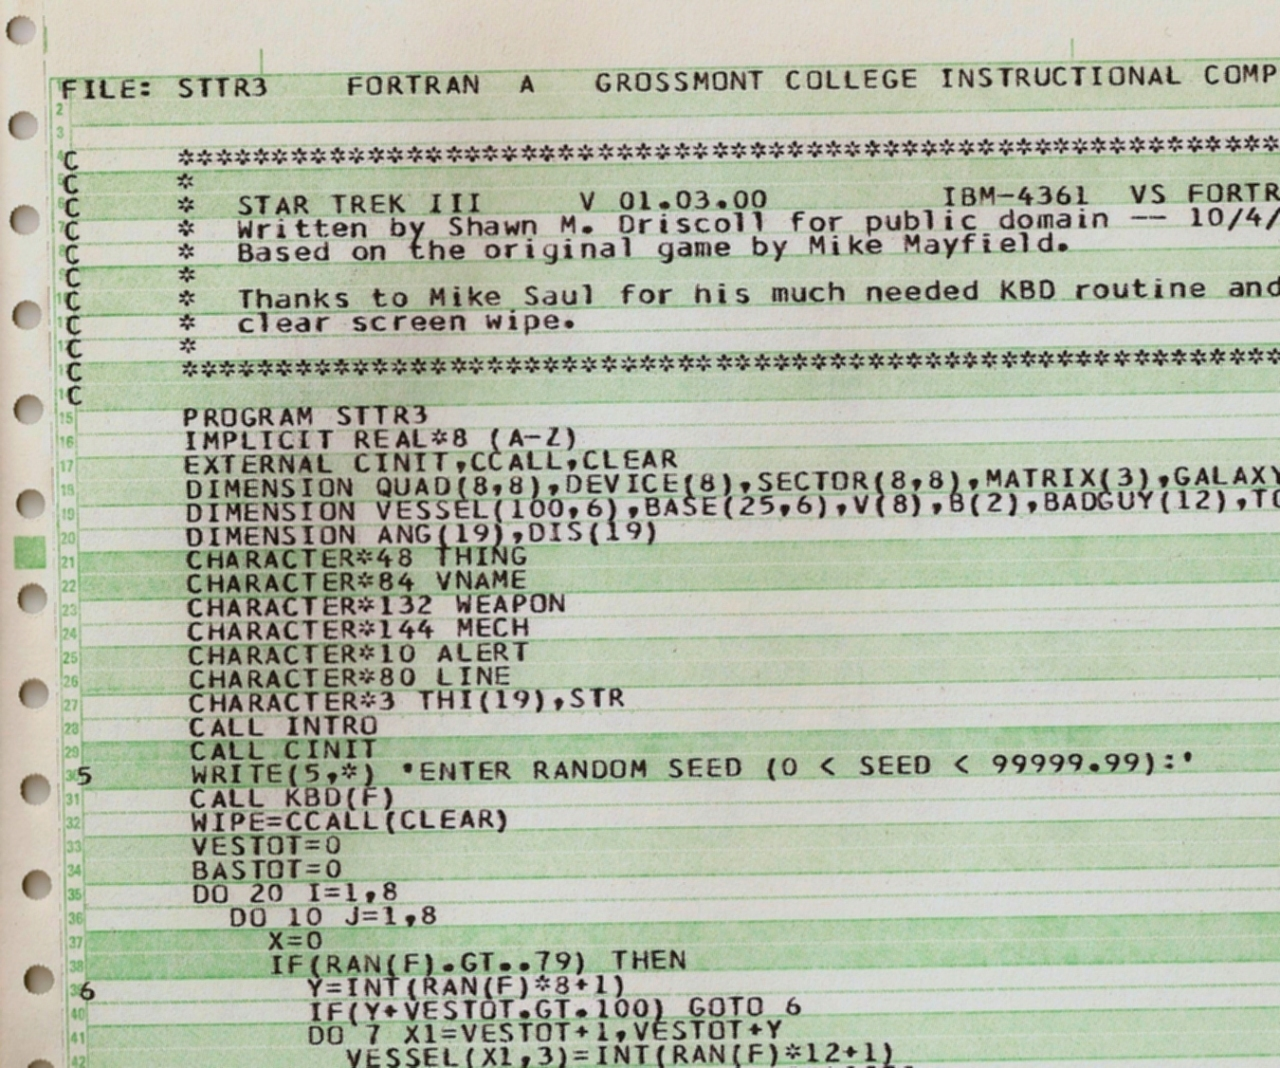 Shawn Driscoll's Tech Blog: FORTRAN 77 is 35 Years Old